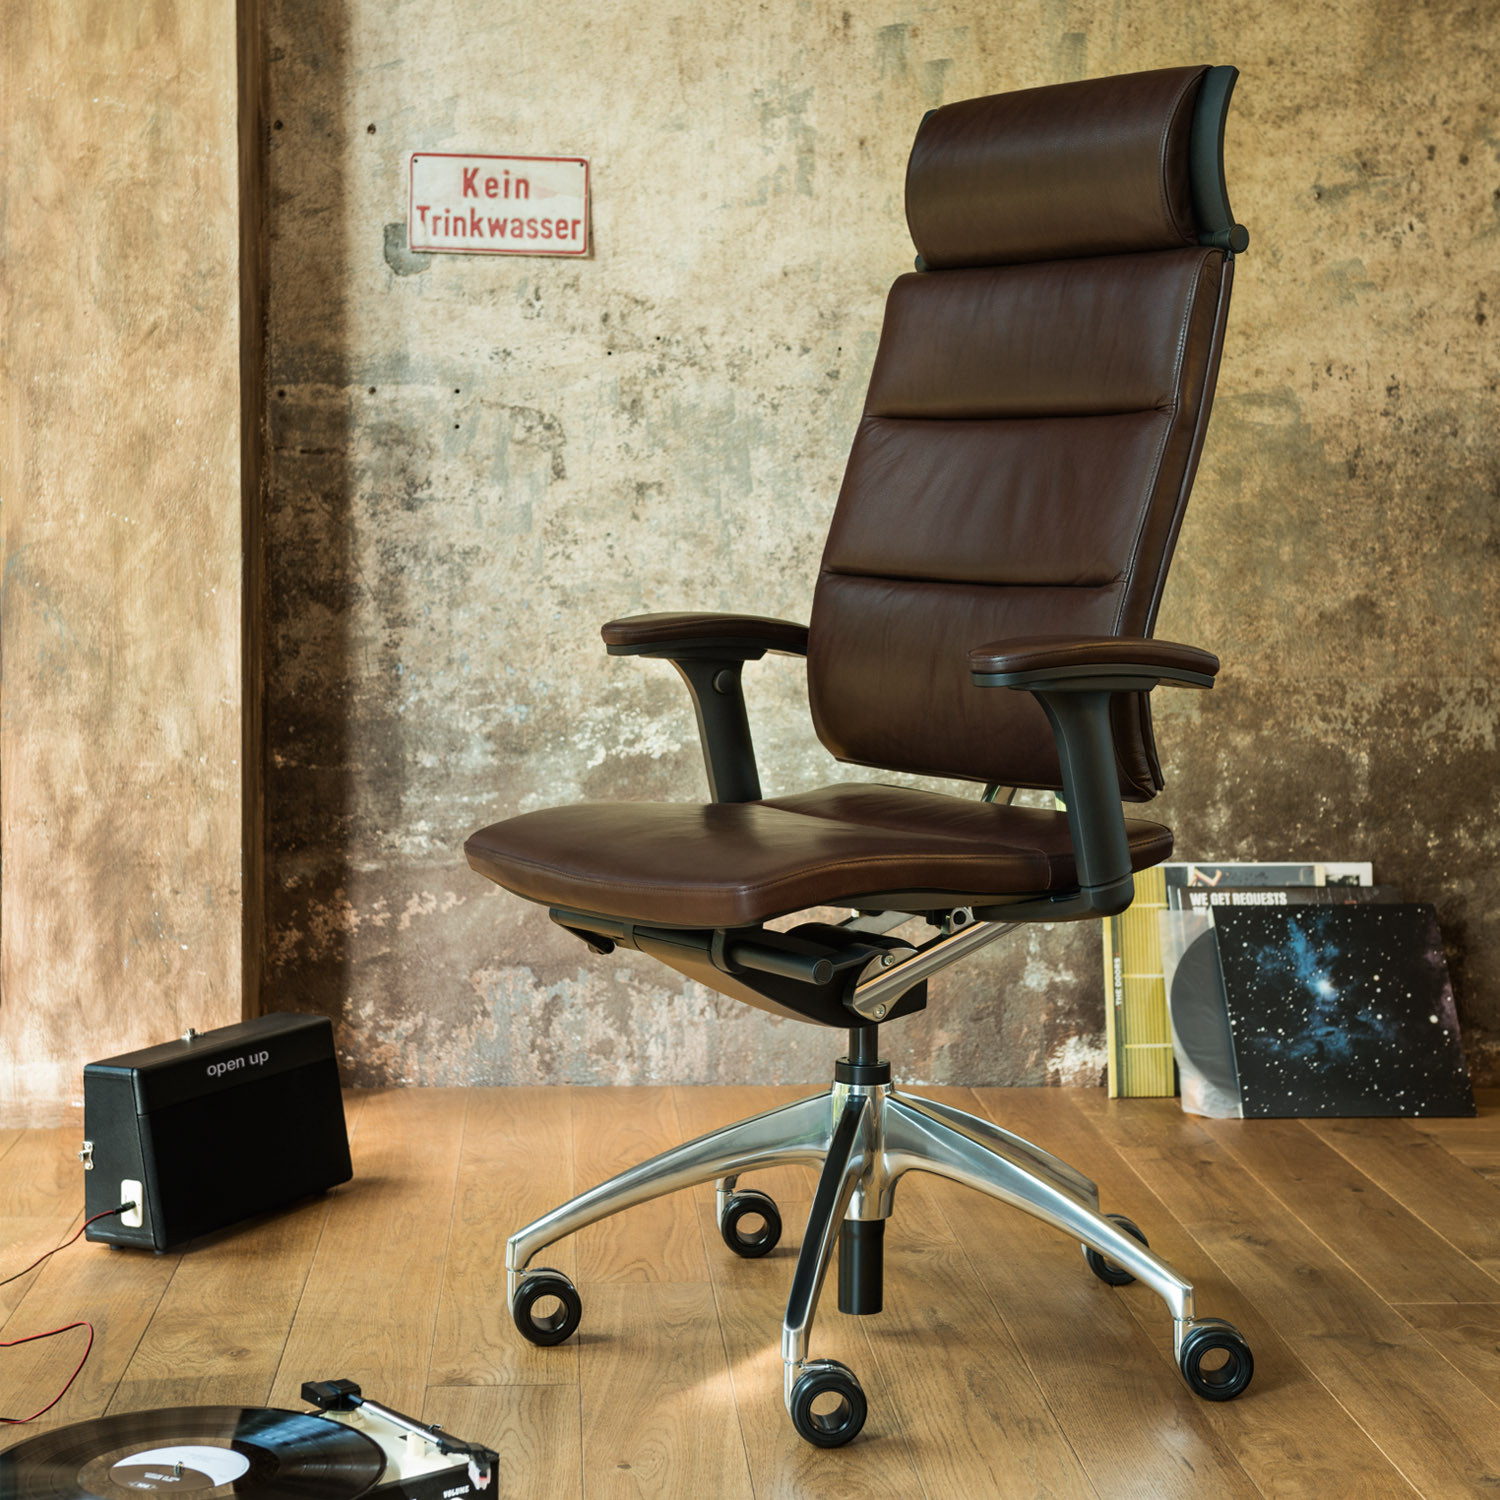 open up modern classic chair ergonomic office chairs apres furniture. Black Bedroom Furniture Sets. Home Design Ideas